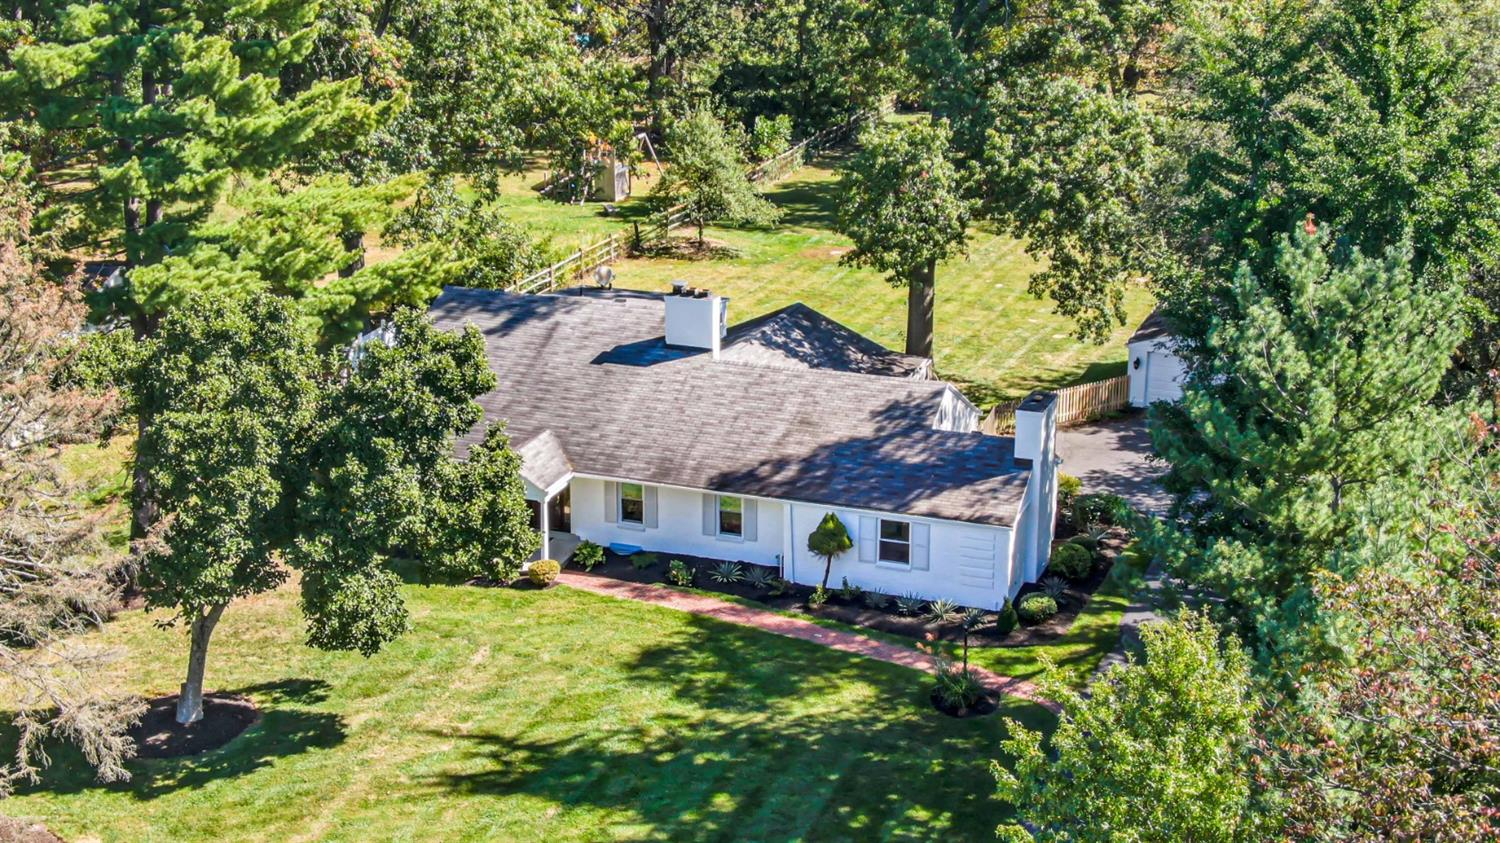 6100 Miami Road, Indian Hill, Ohio 45243, 5 Bedrooms Bedrooms, 13 Rooms Rooms,3 BathroomsBathrooms,Single Family Residence,For Sale,Miami,1717243